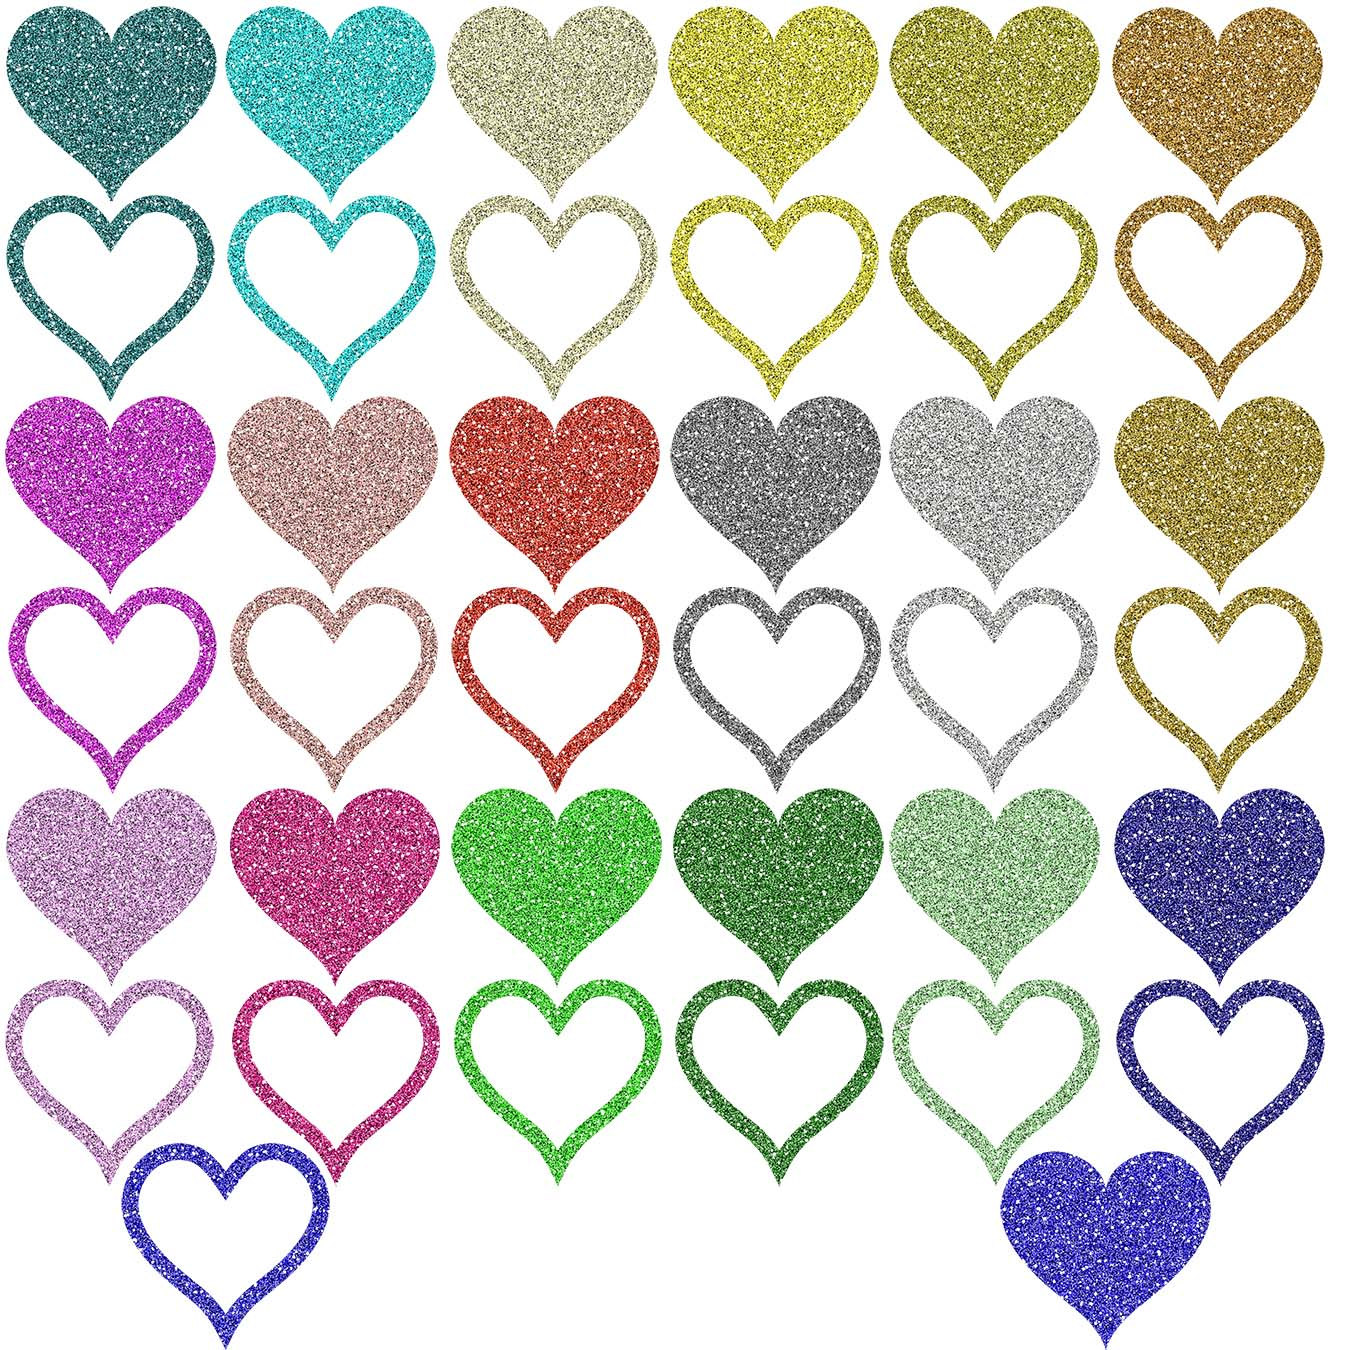 1350x1350 Glitter Clipart Colorful Heart